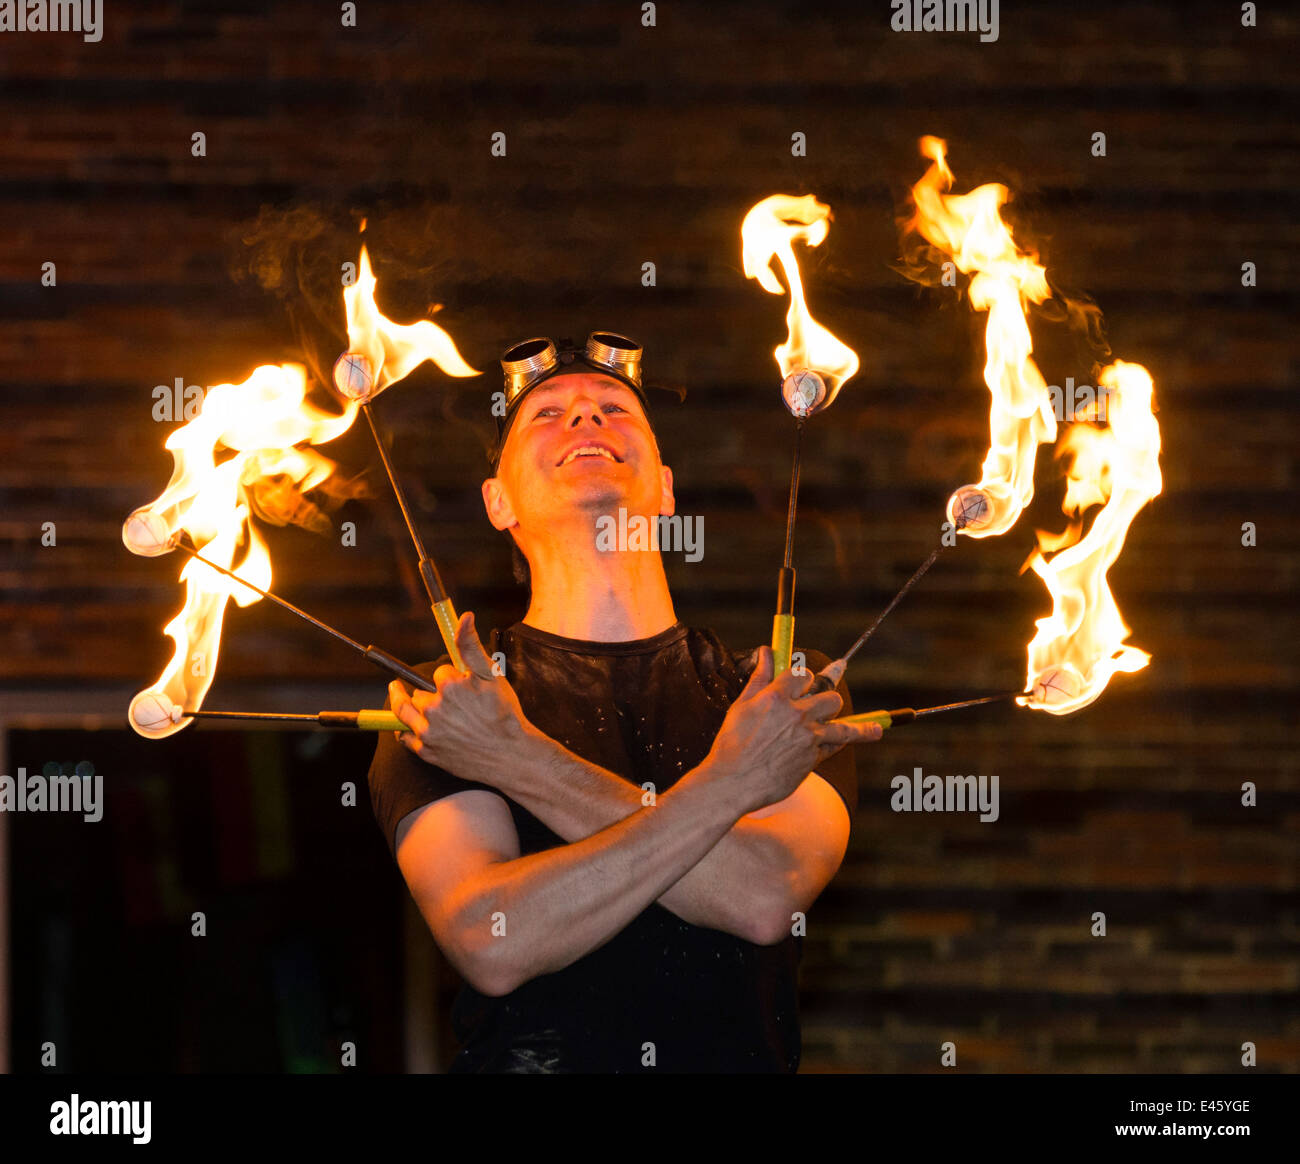 'Der Feuermann' shows his performance at 'Extraschicht' - the annual night of industrial culture - Stock Image